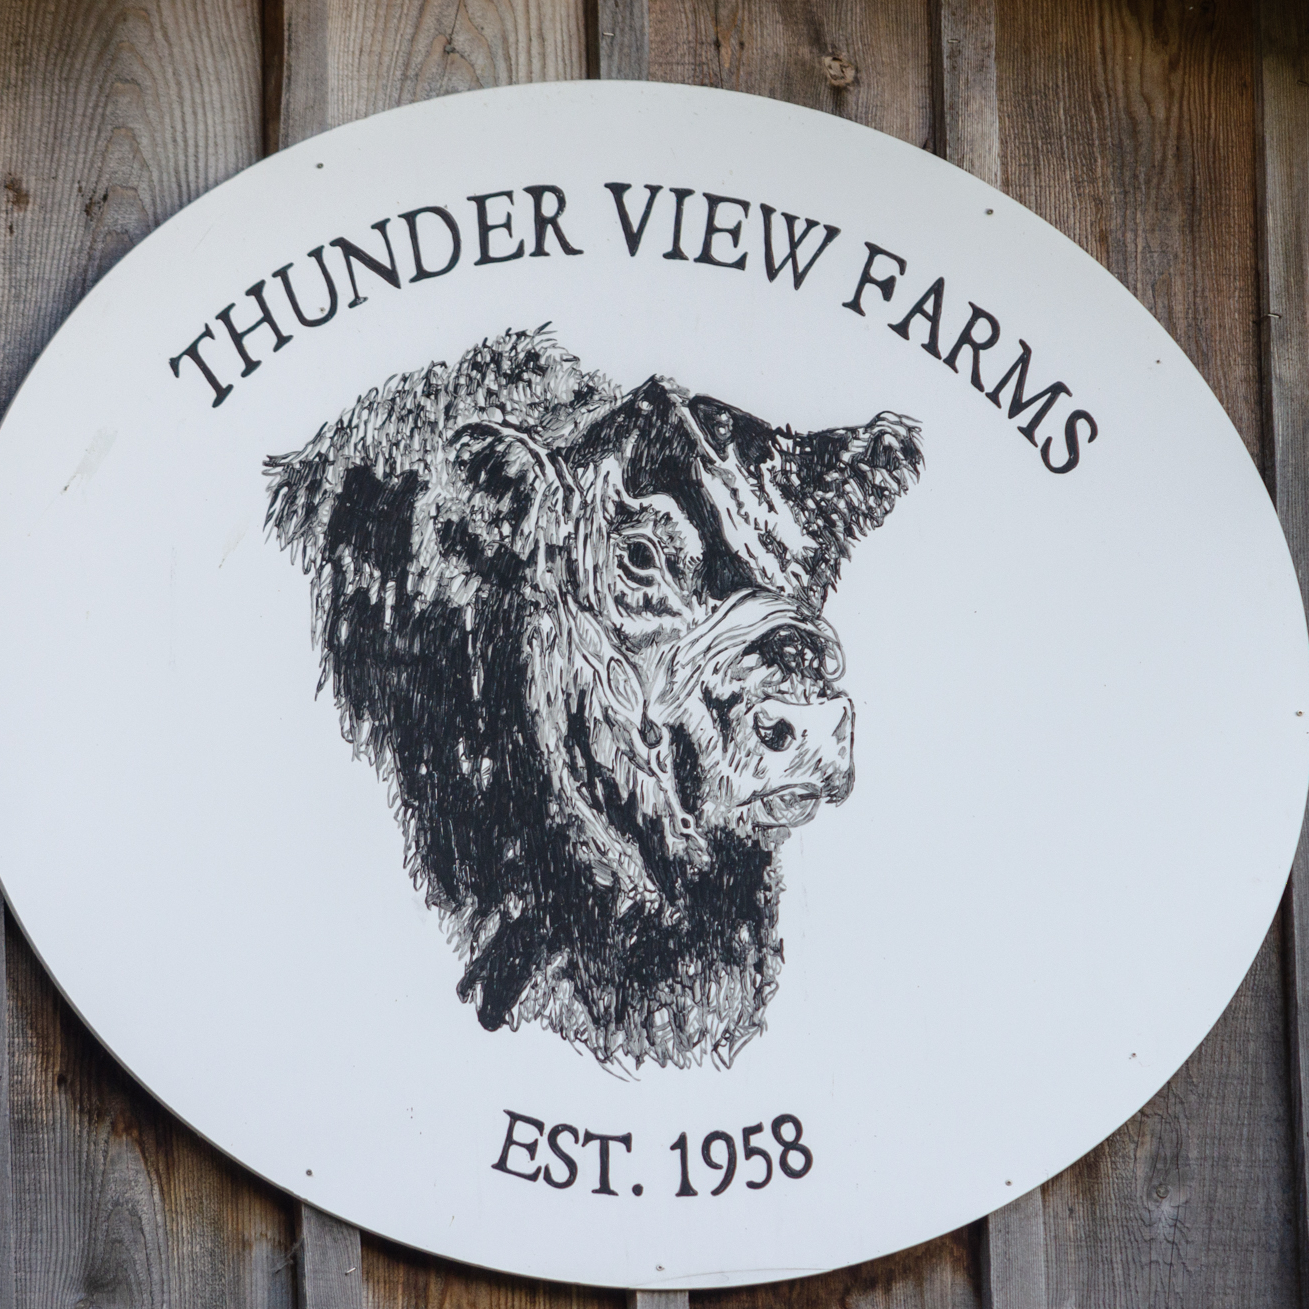 Thunderview Farms